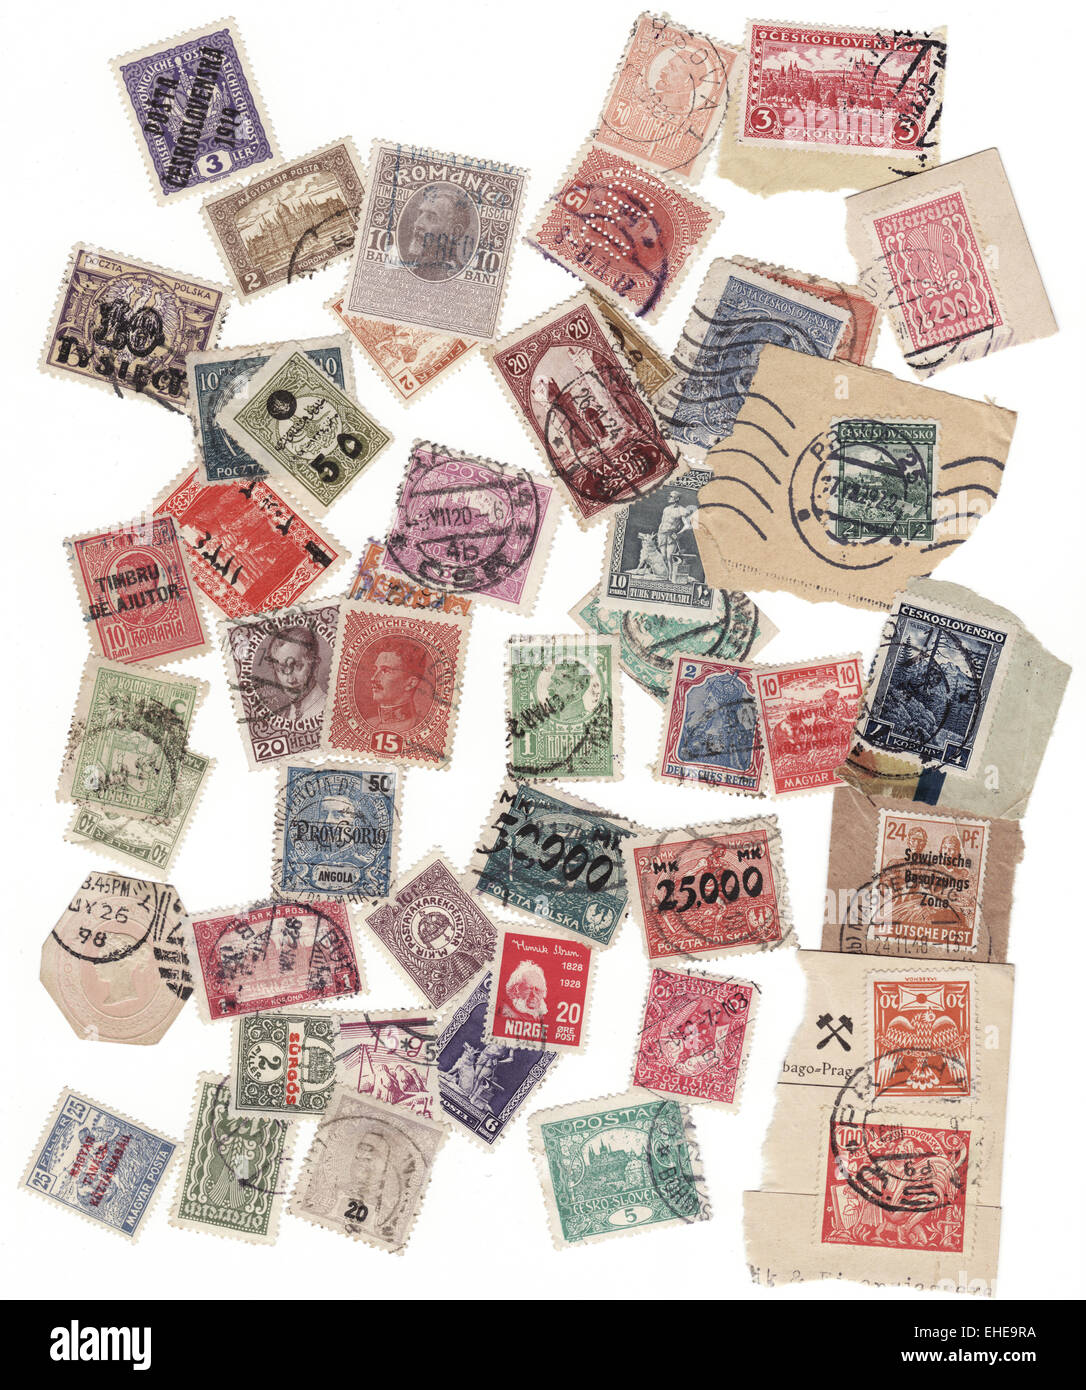 Stamps - Stock Image